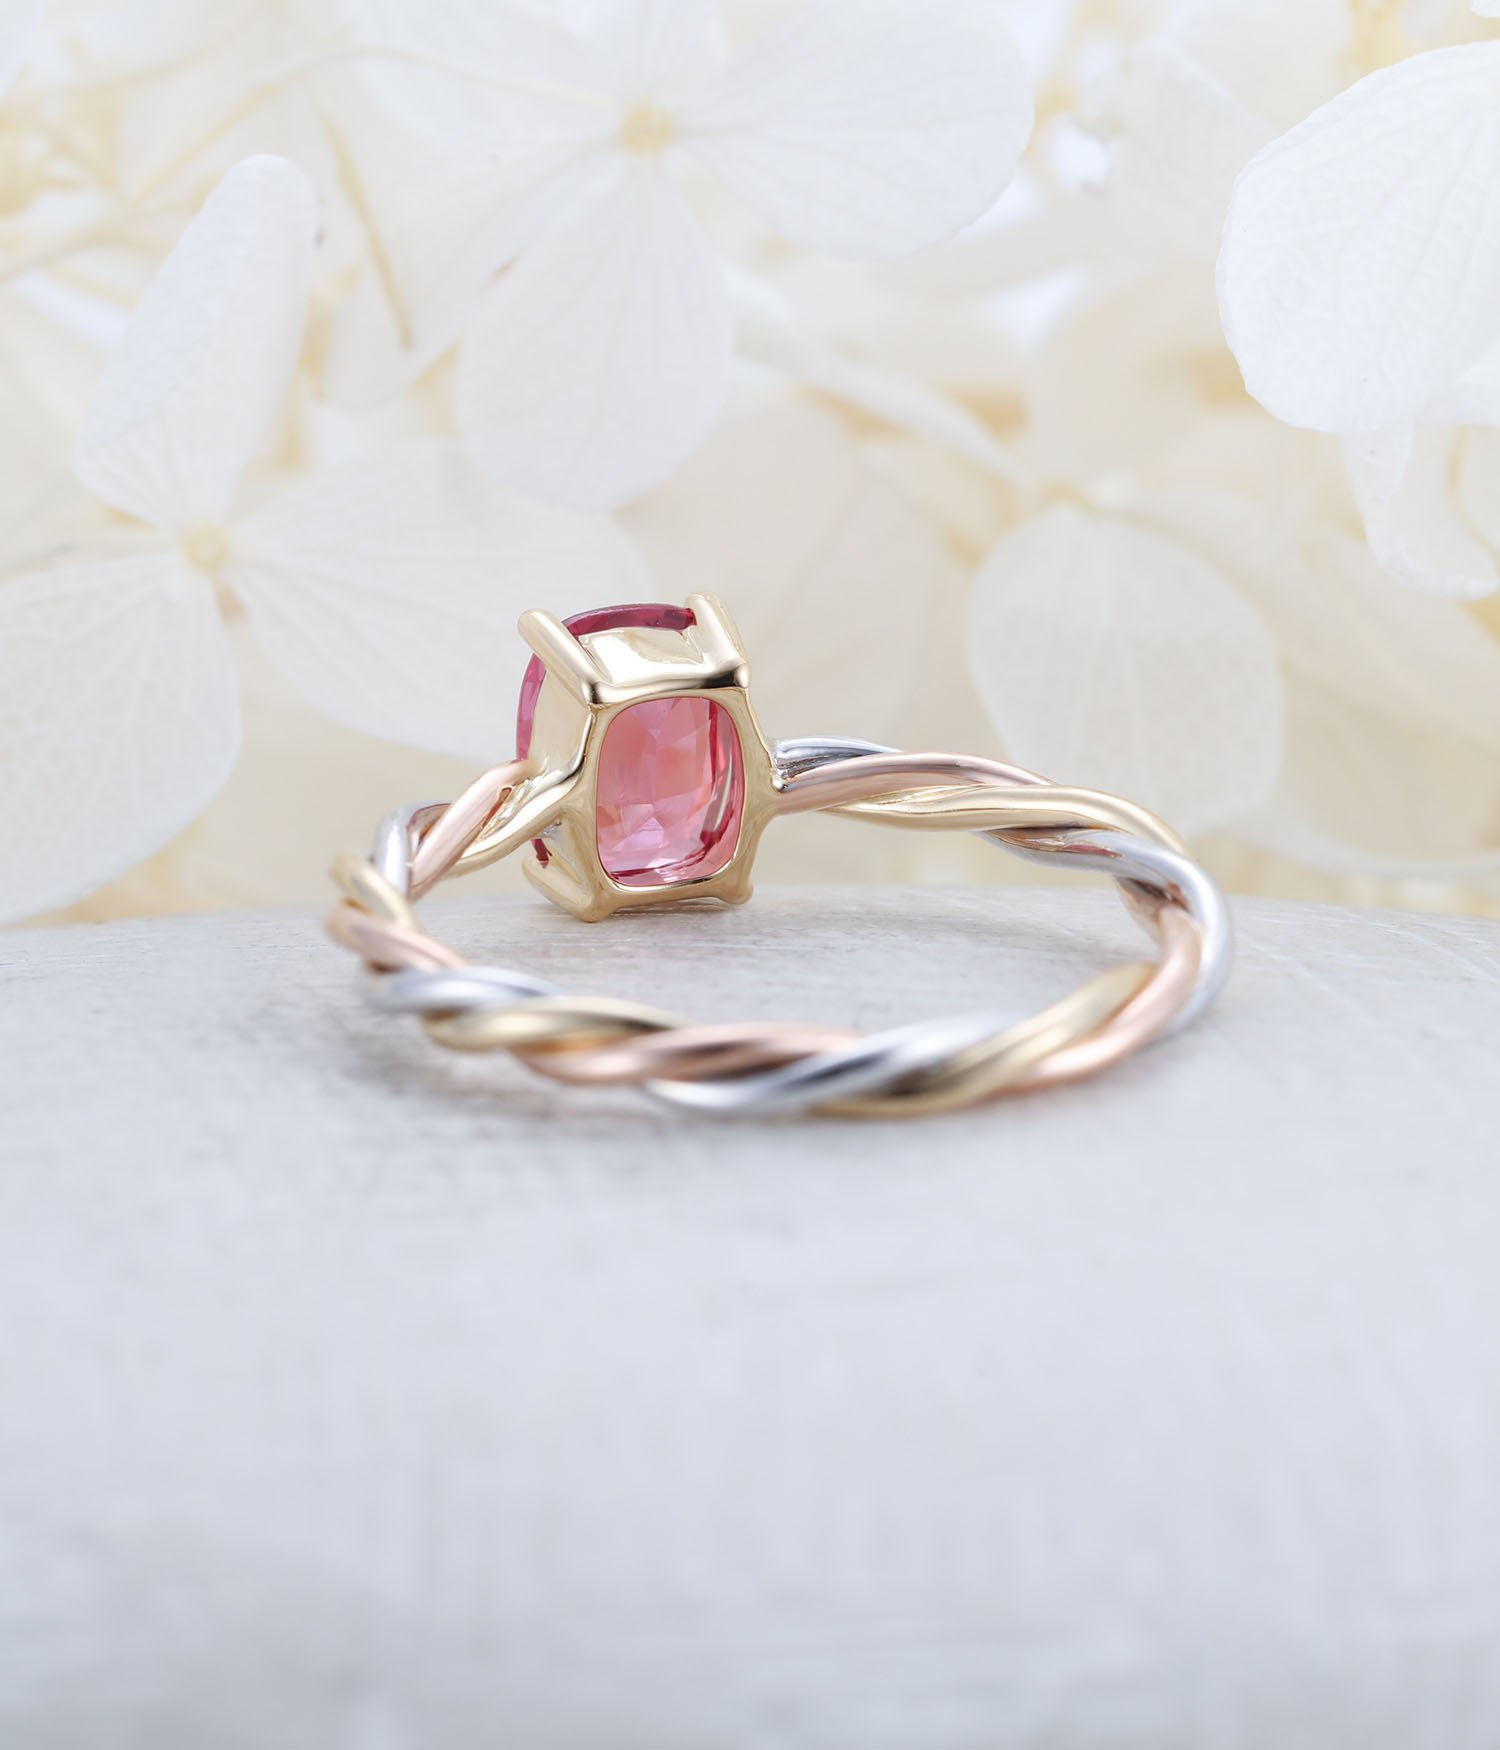 Vintage Engagement Ring Rose Gold Pink Sapphire Engagement